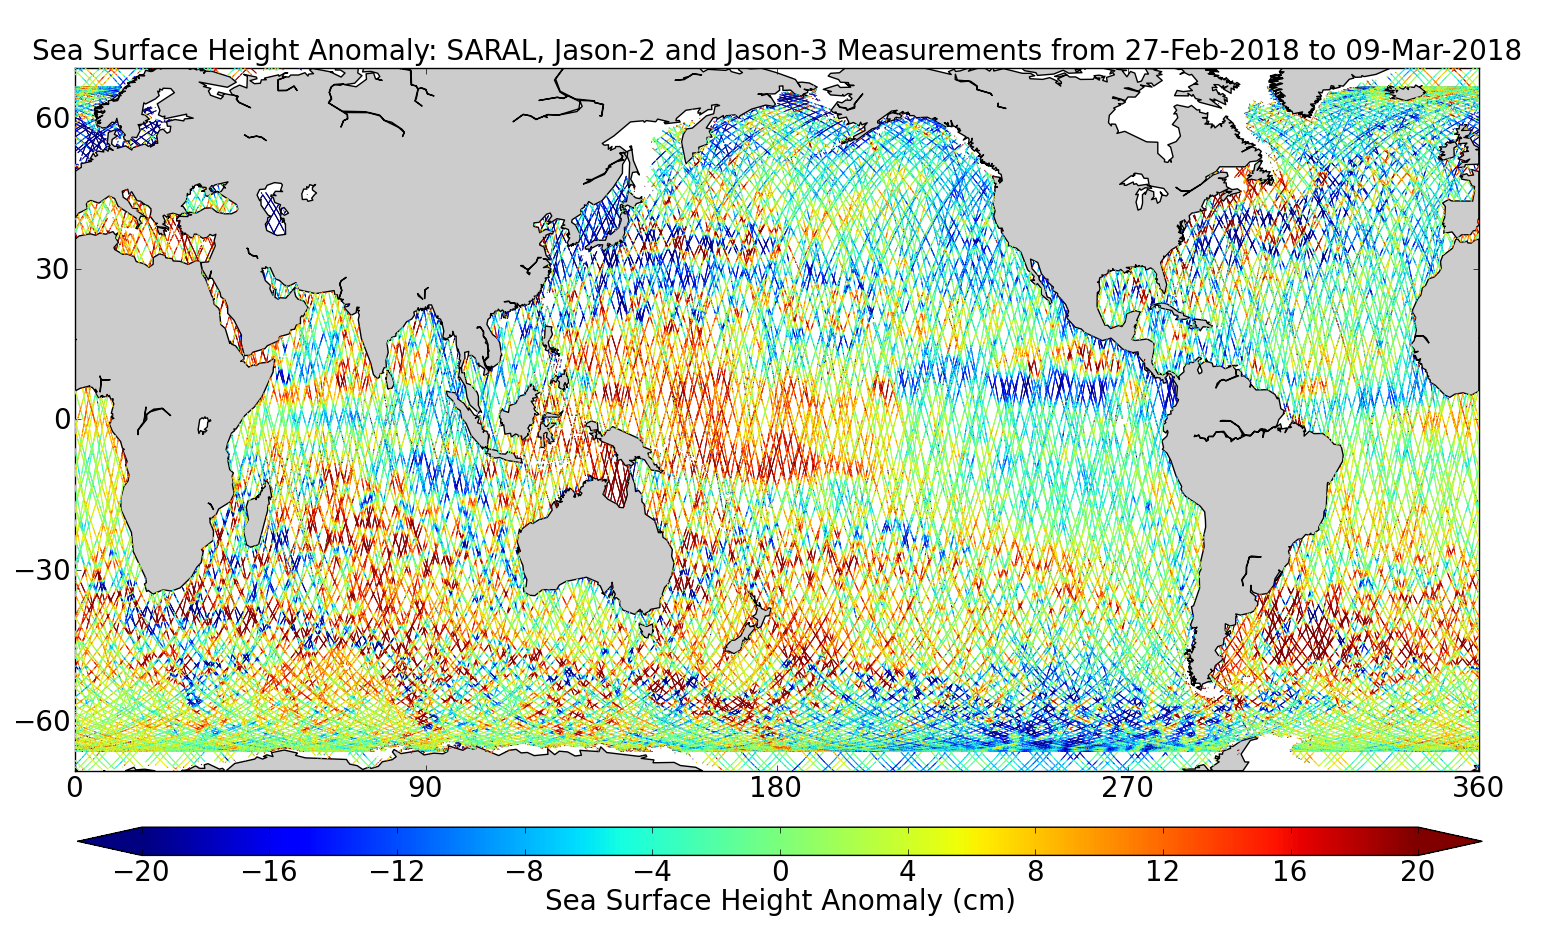 Sea Surface Height Anomaly: SARAL, Jason-2 and Jason-3 Measurements from 27-Feb-2018 to 09-Mar-2018